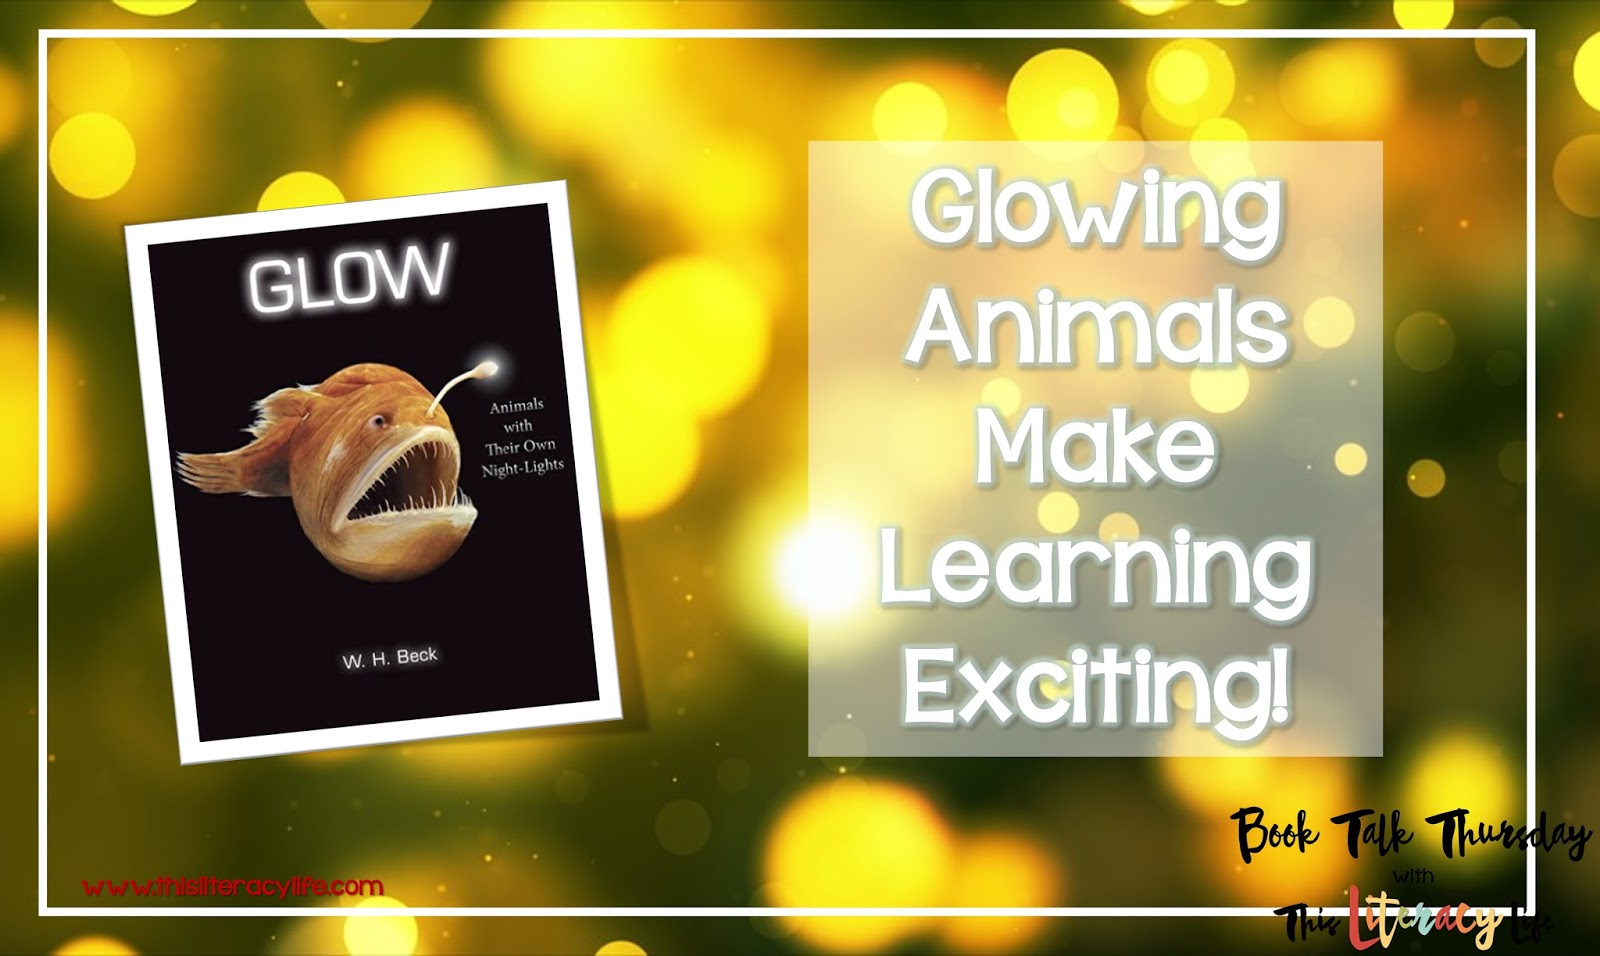 Students will be amazed as they read about animals that glow in the book Glow. And using it in your classroom can be simple and engaging.